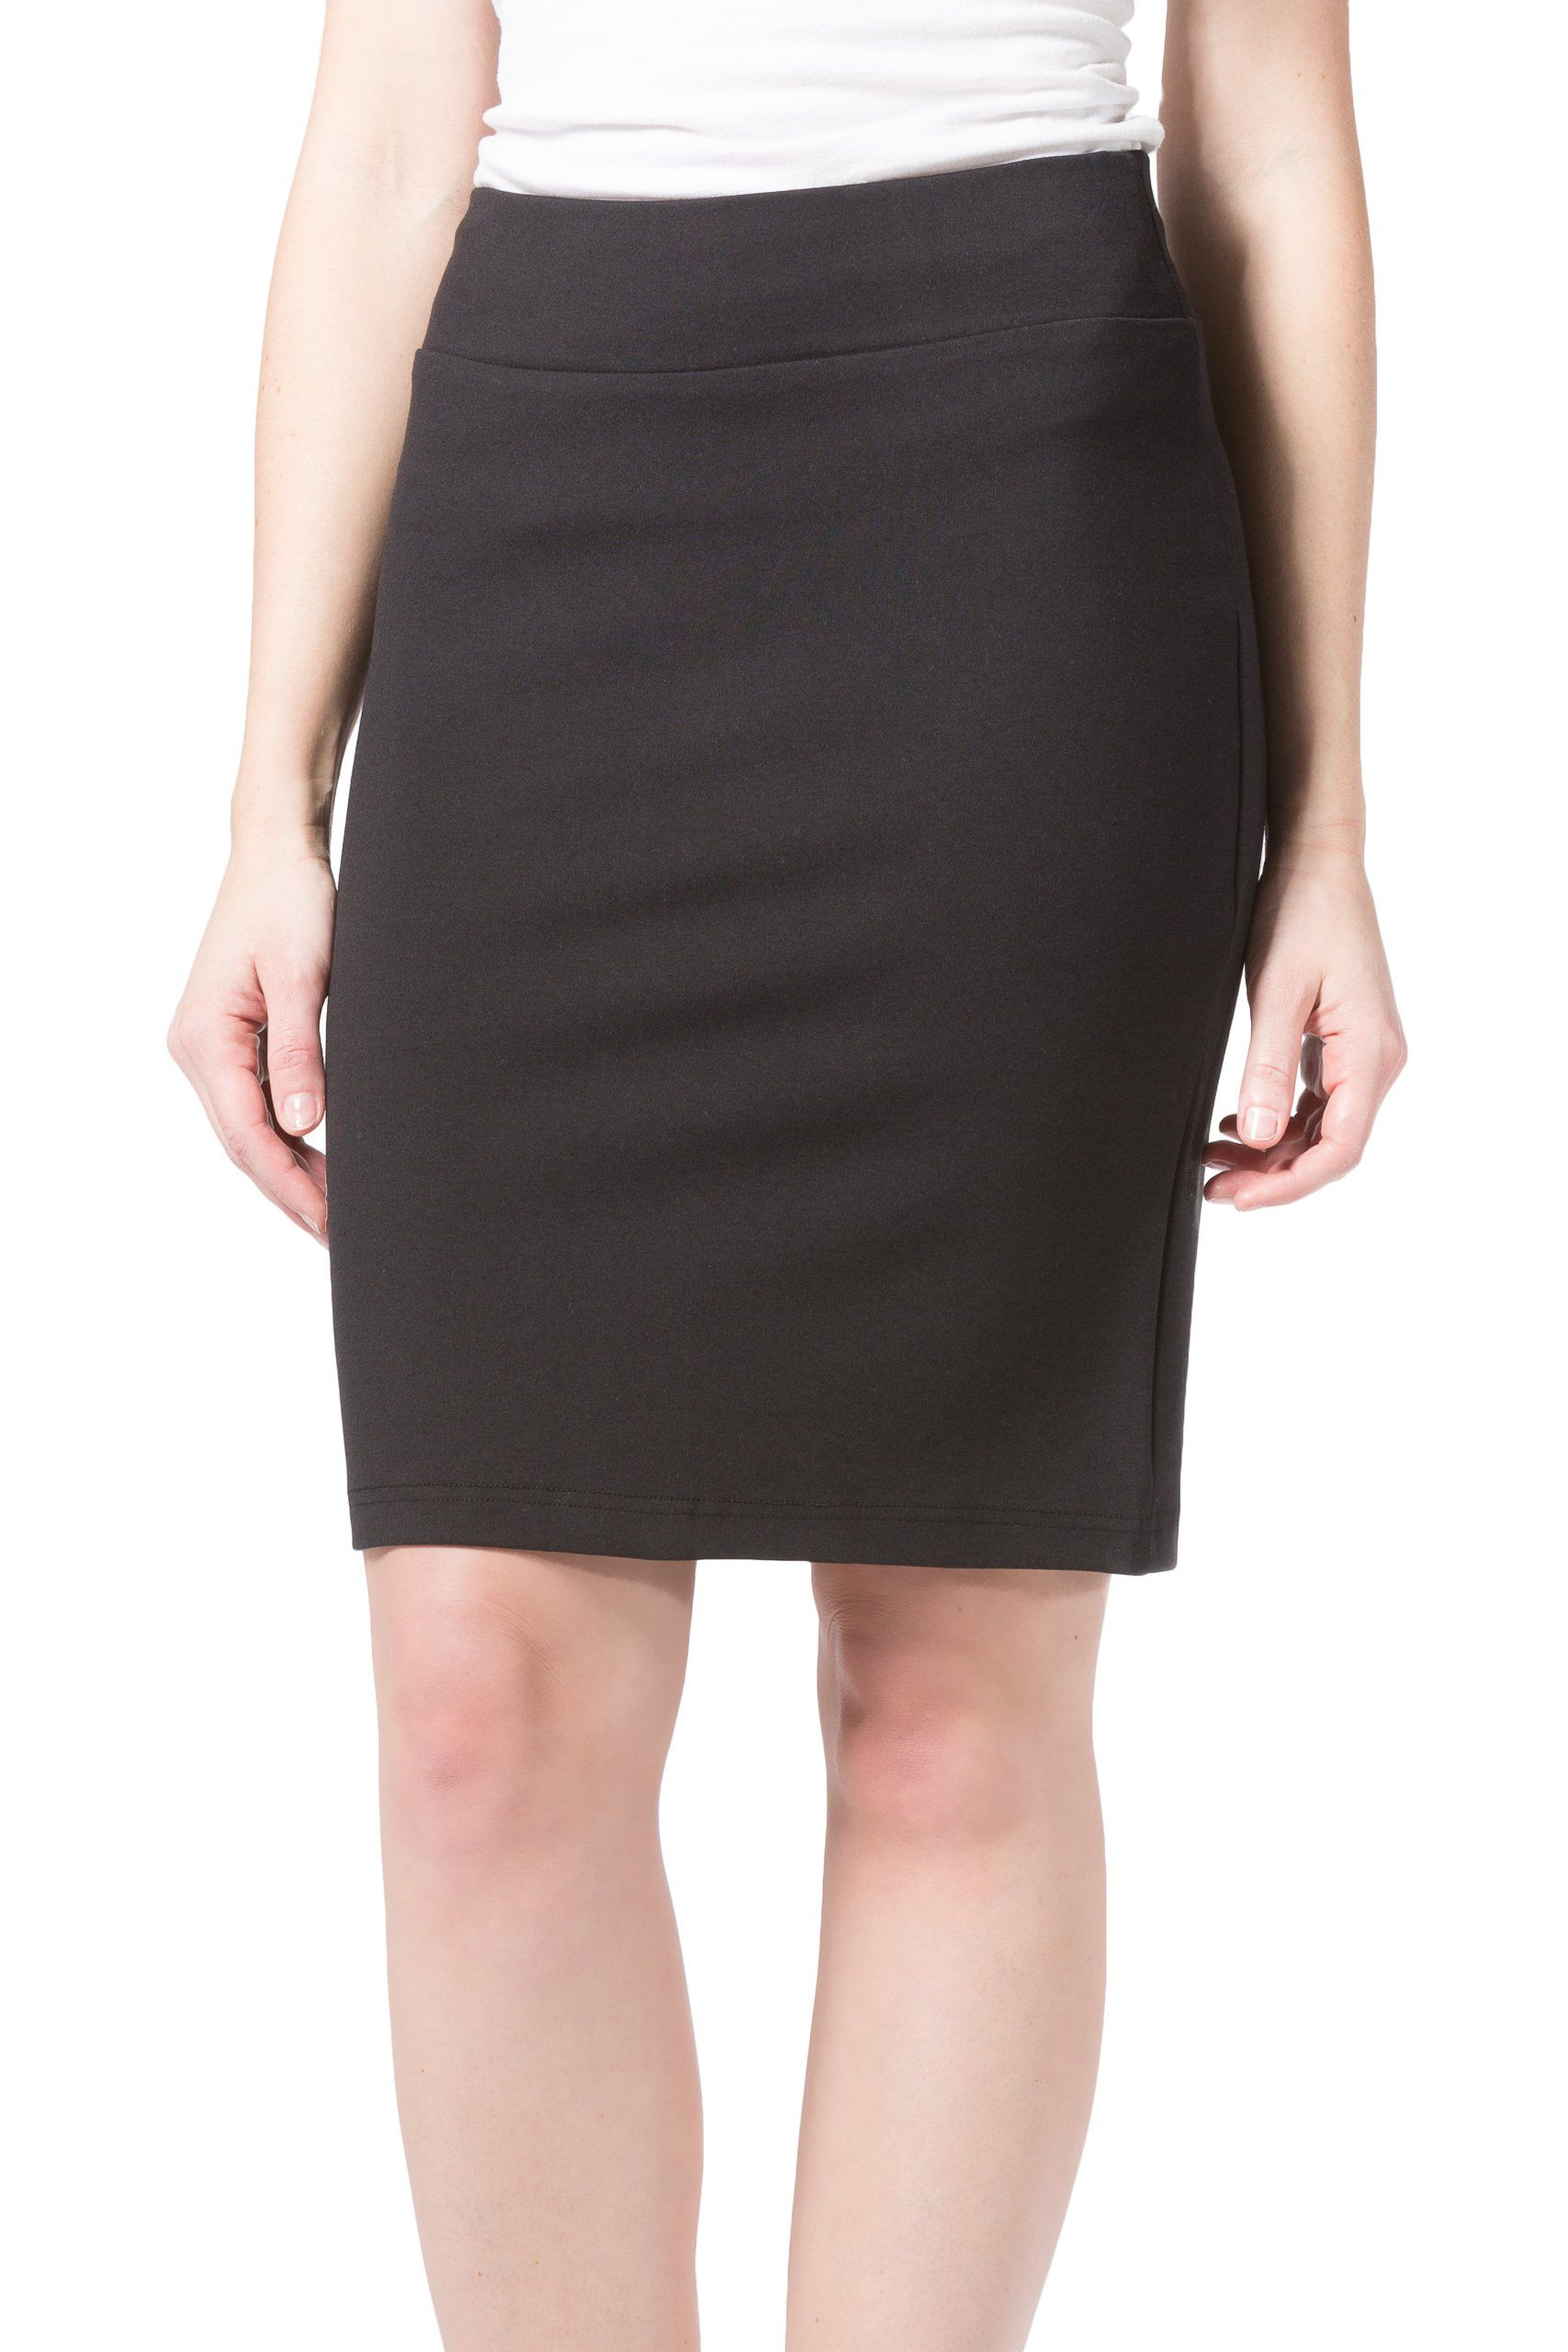 9c2aabe3aa Fishers Finery Womens Ecofabric Ponte Stretch Pencil Skirt; Pull On Black L  * You could obtain added information at the image link.